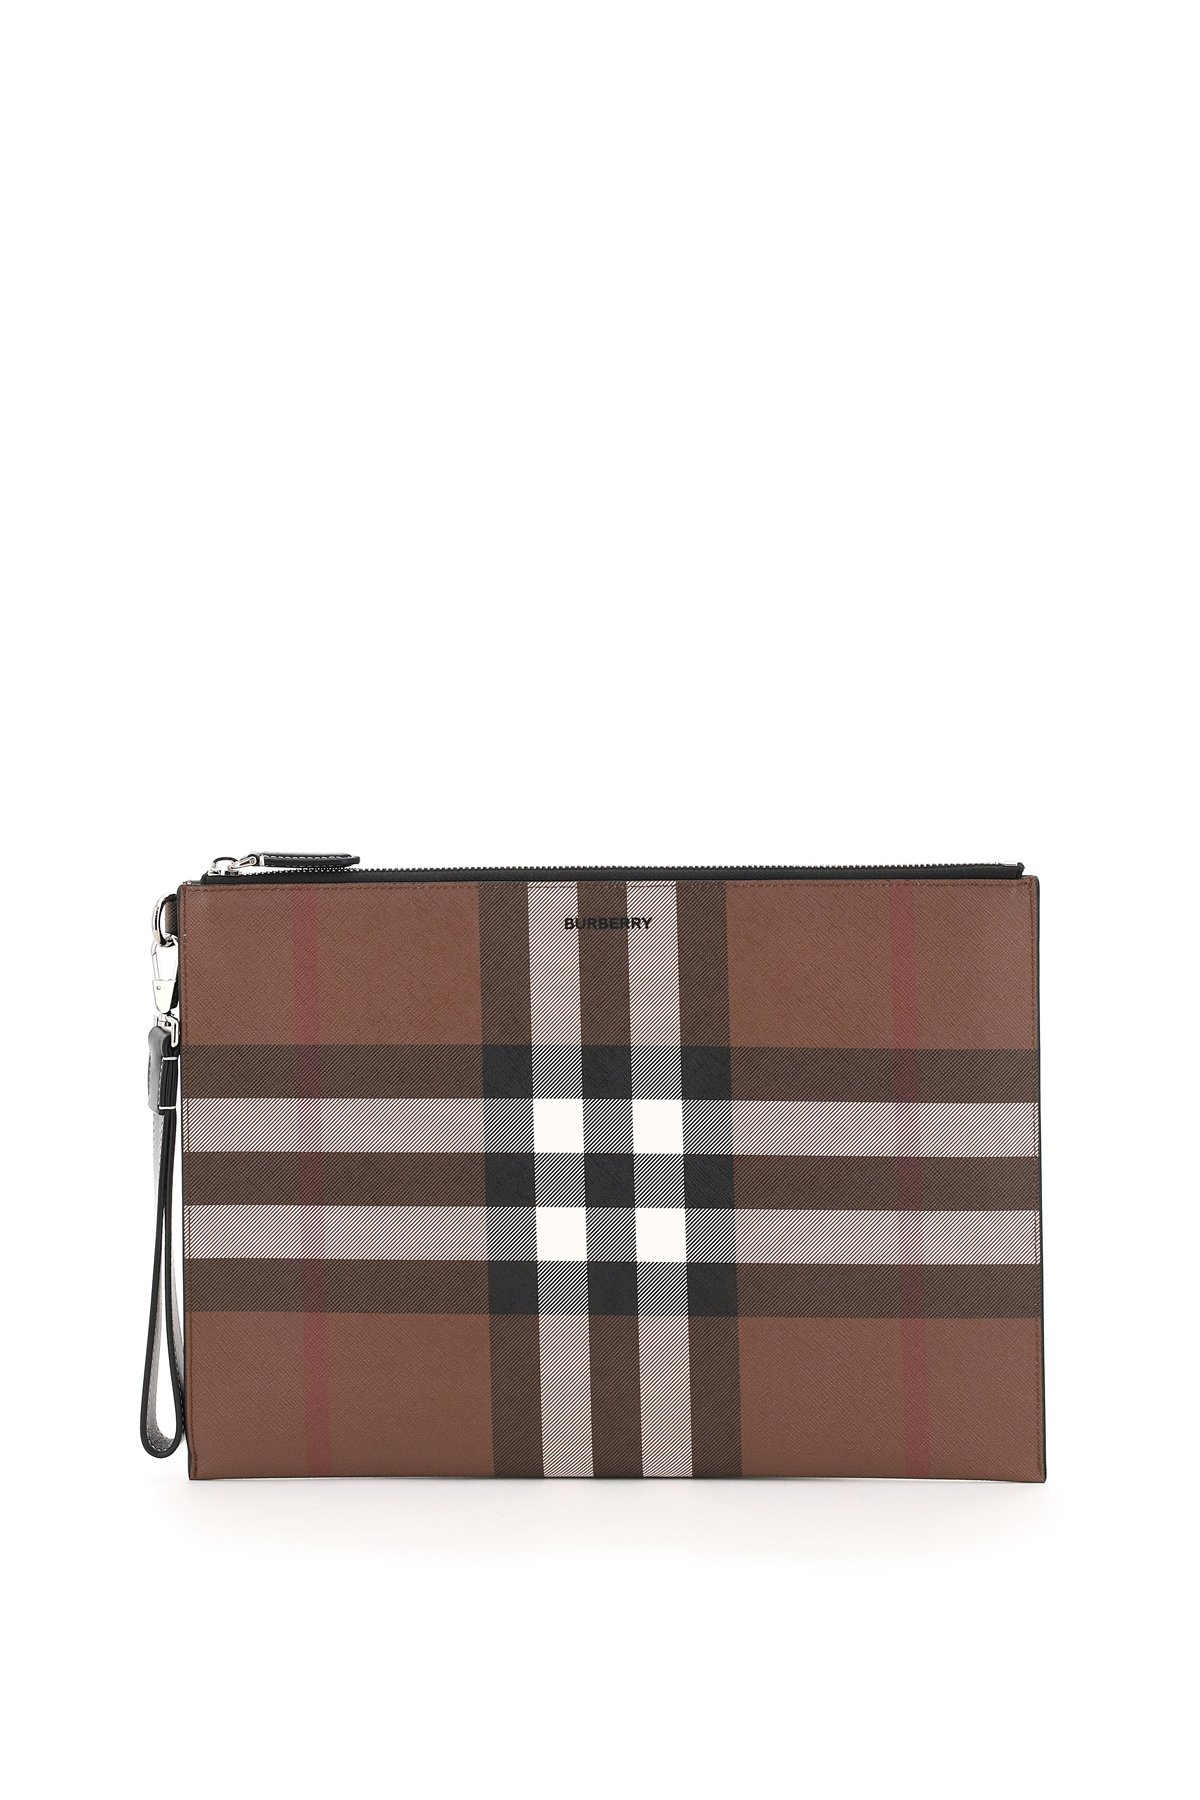 Burberry pouch in e-canvas stampa tartan